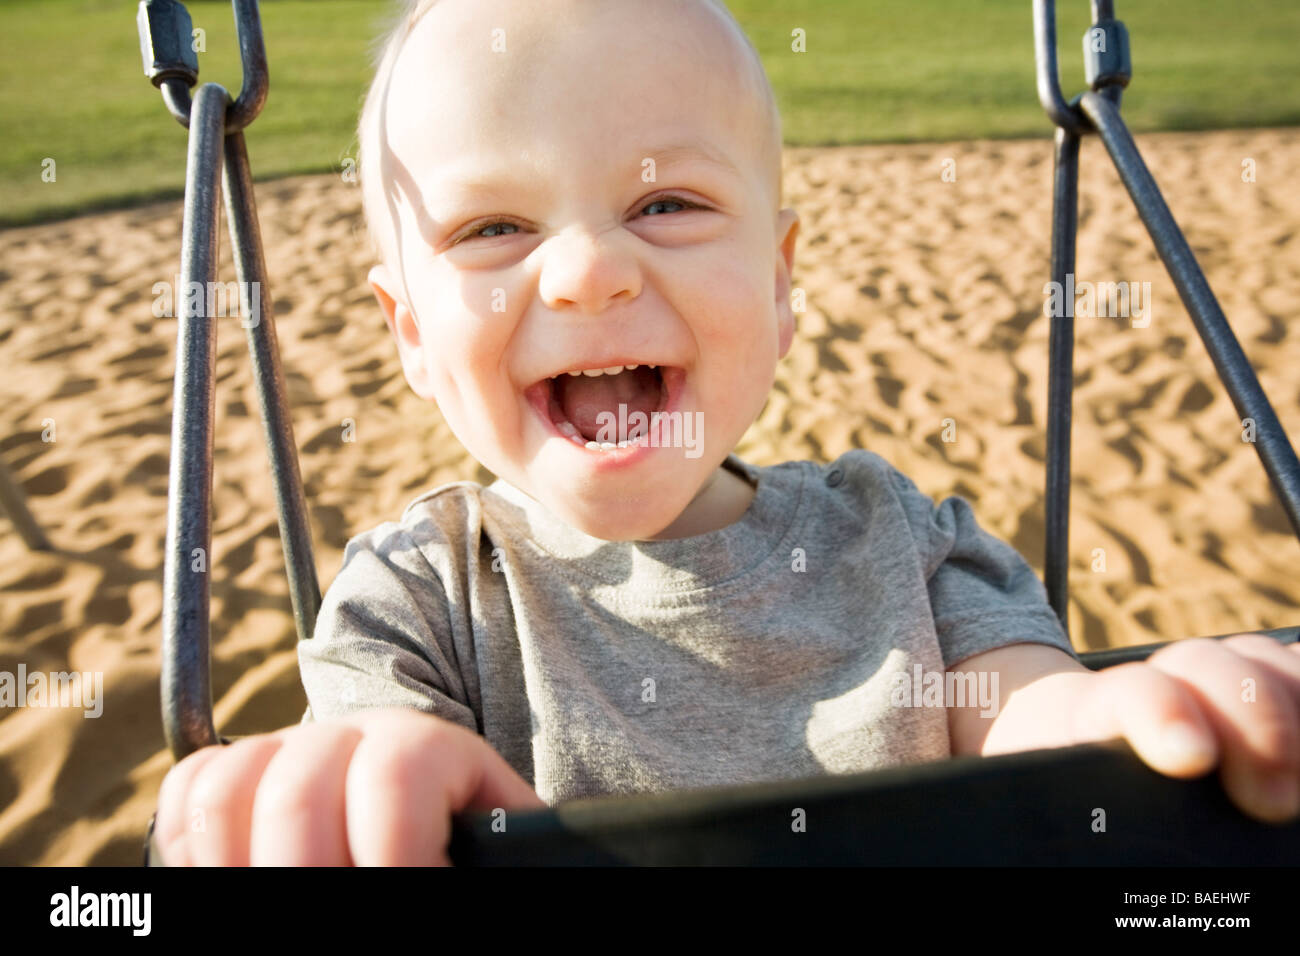 Boy in a swing - Stock Image